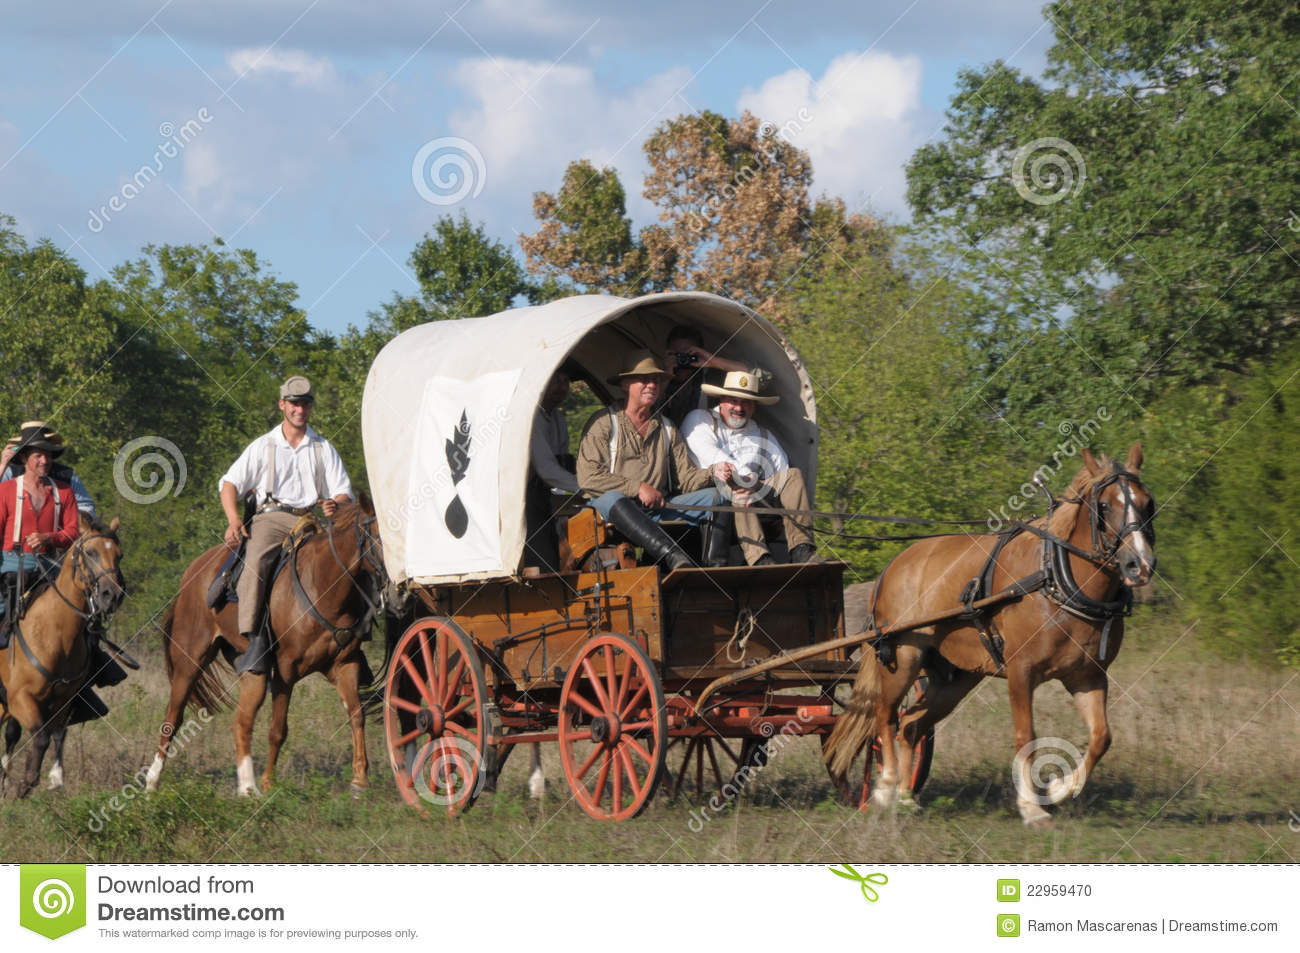 Covered Wagon in civil war reenactment. MO, Wilson Creek commemorate ...